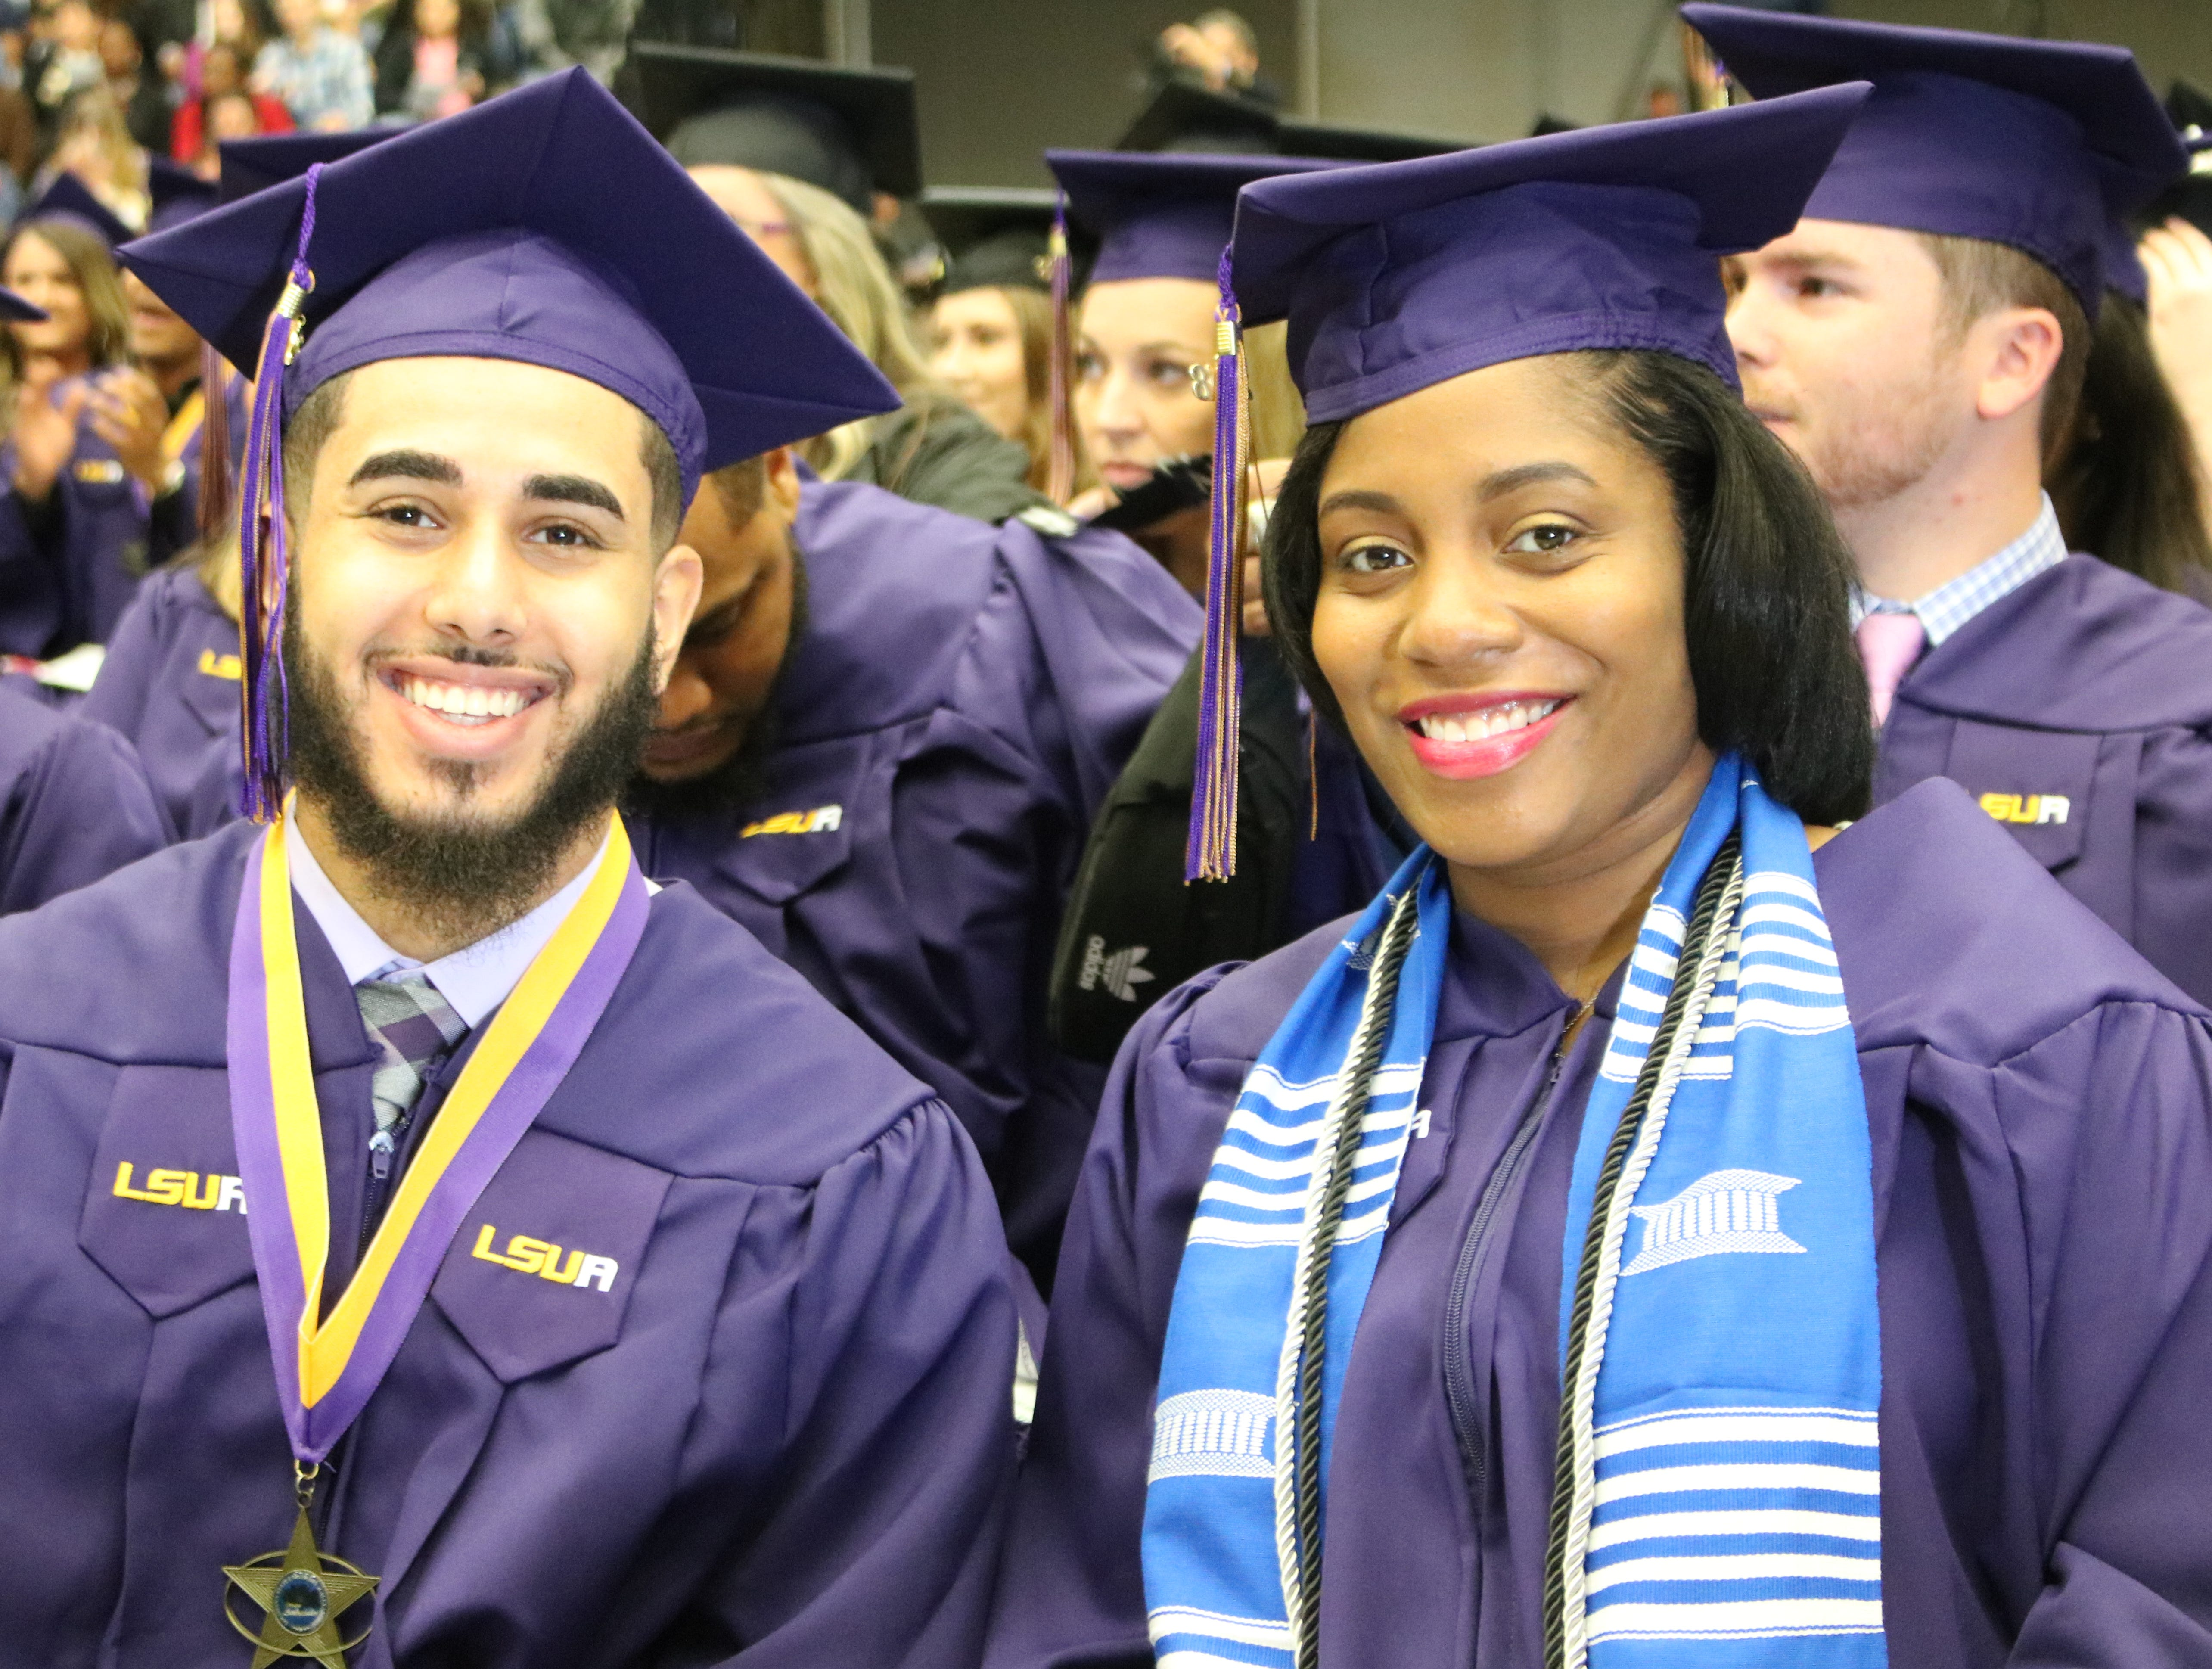 Yousef Ijbara and Anshonarial Greenhouse smile before crossing the stage to receive their degrees Dec. 13, 2018, at the University of Louisiana of Alexandria's winter graduation. Greenhouse was in labor during the ceremony but waited to go to the hospital until her diploma was in hand.